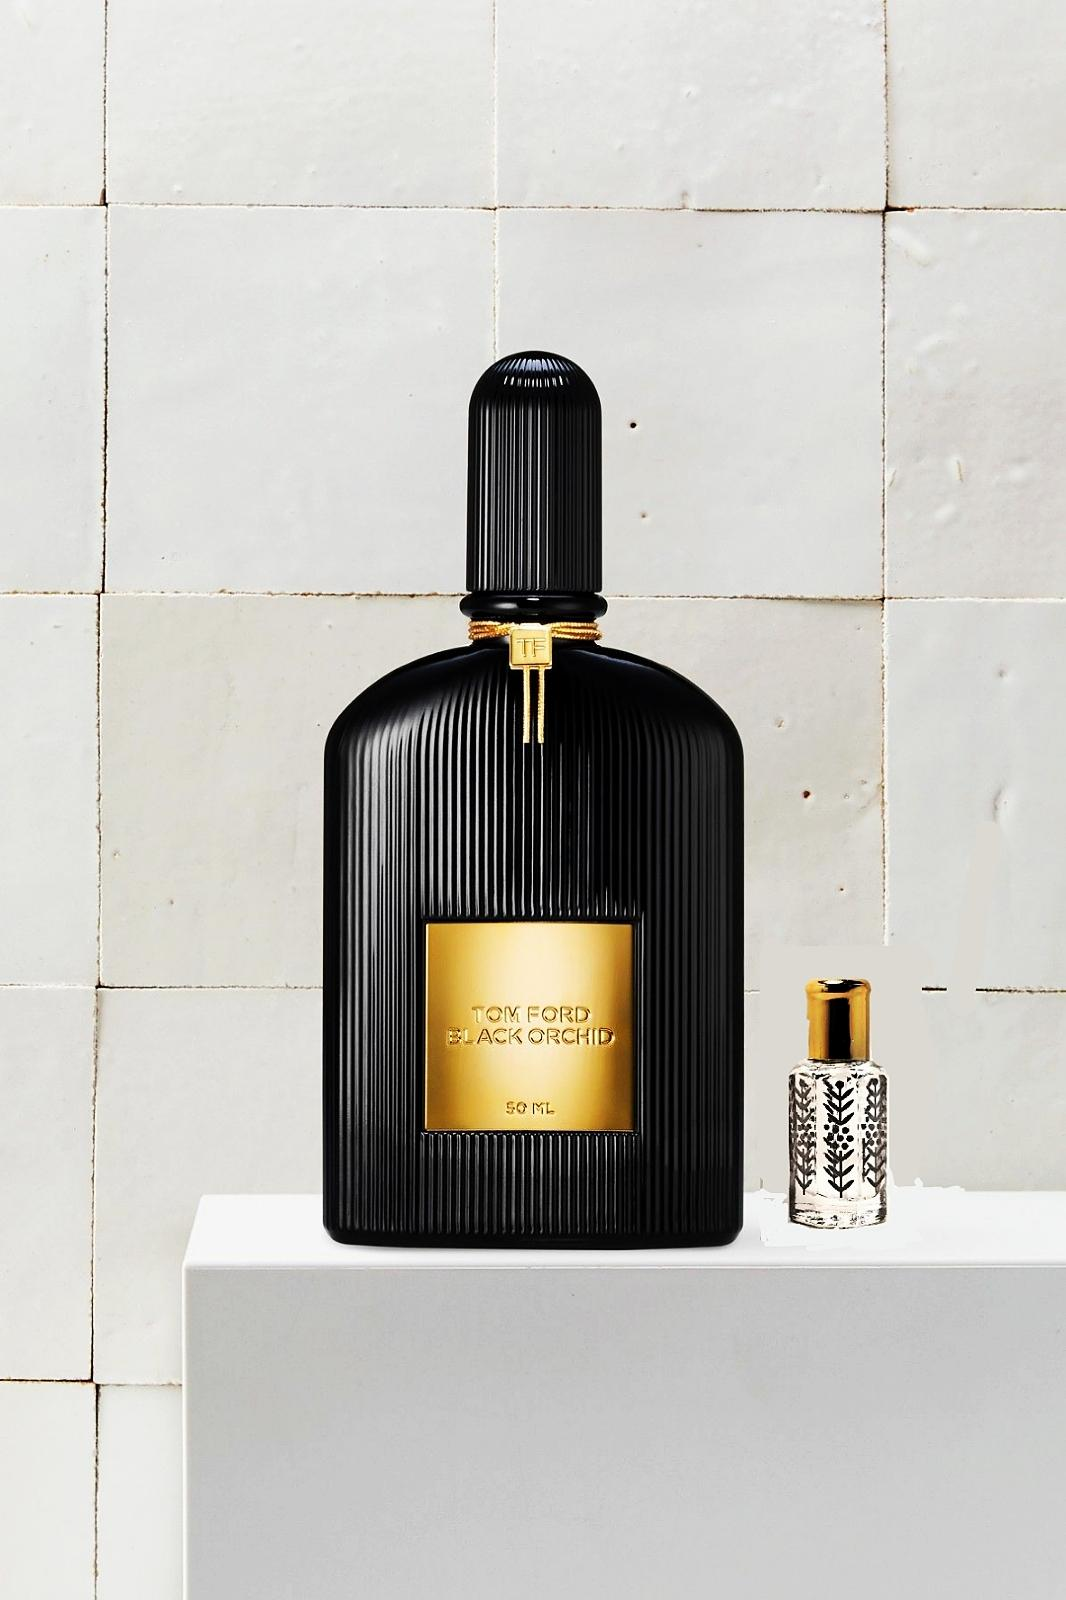 9409419c377b Tomford Tobacco Oud(cologne). Rs. 850. Pakistan. ADD TO CART. Black orchid  perfume oil(attar) - 12ML